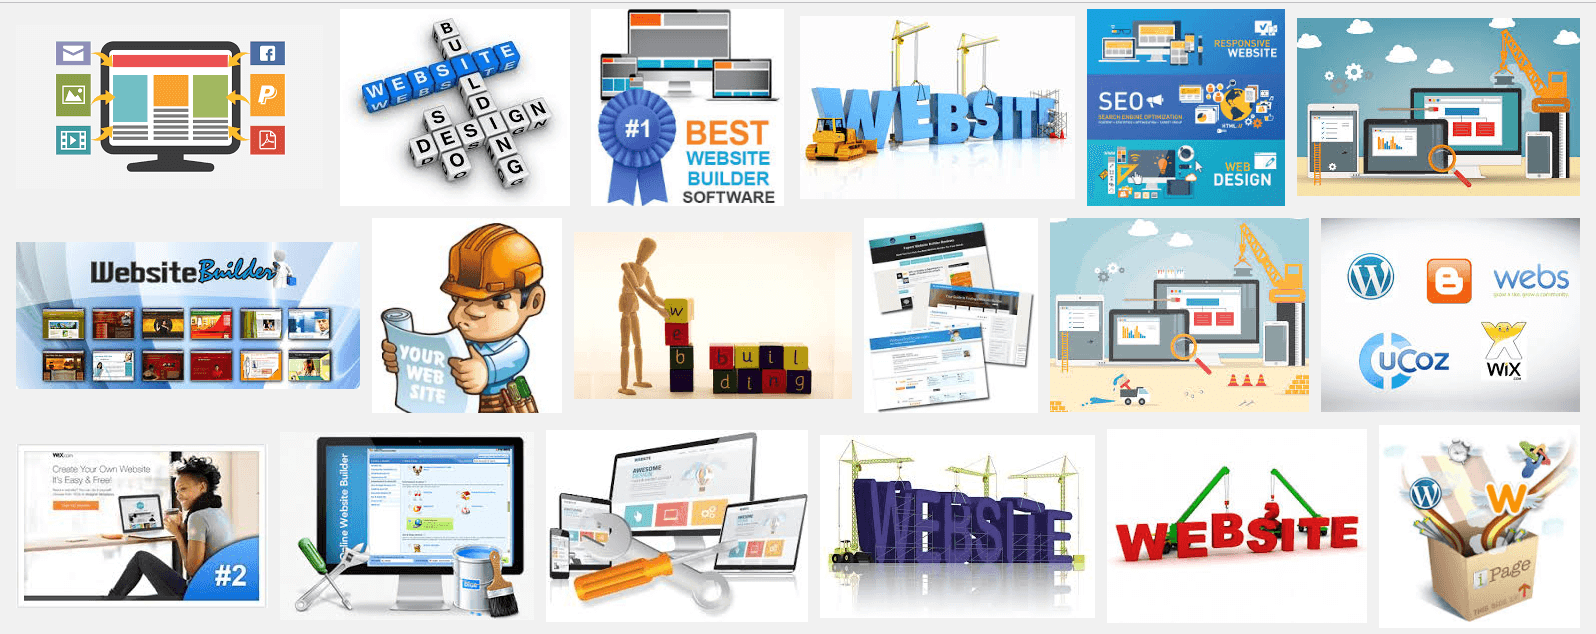 website-builders that compete with wordpress